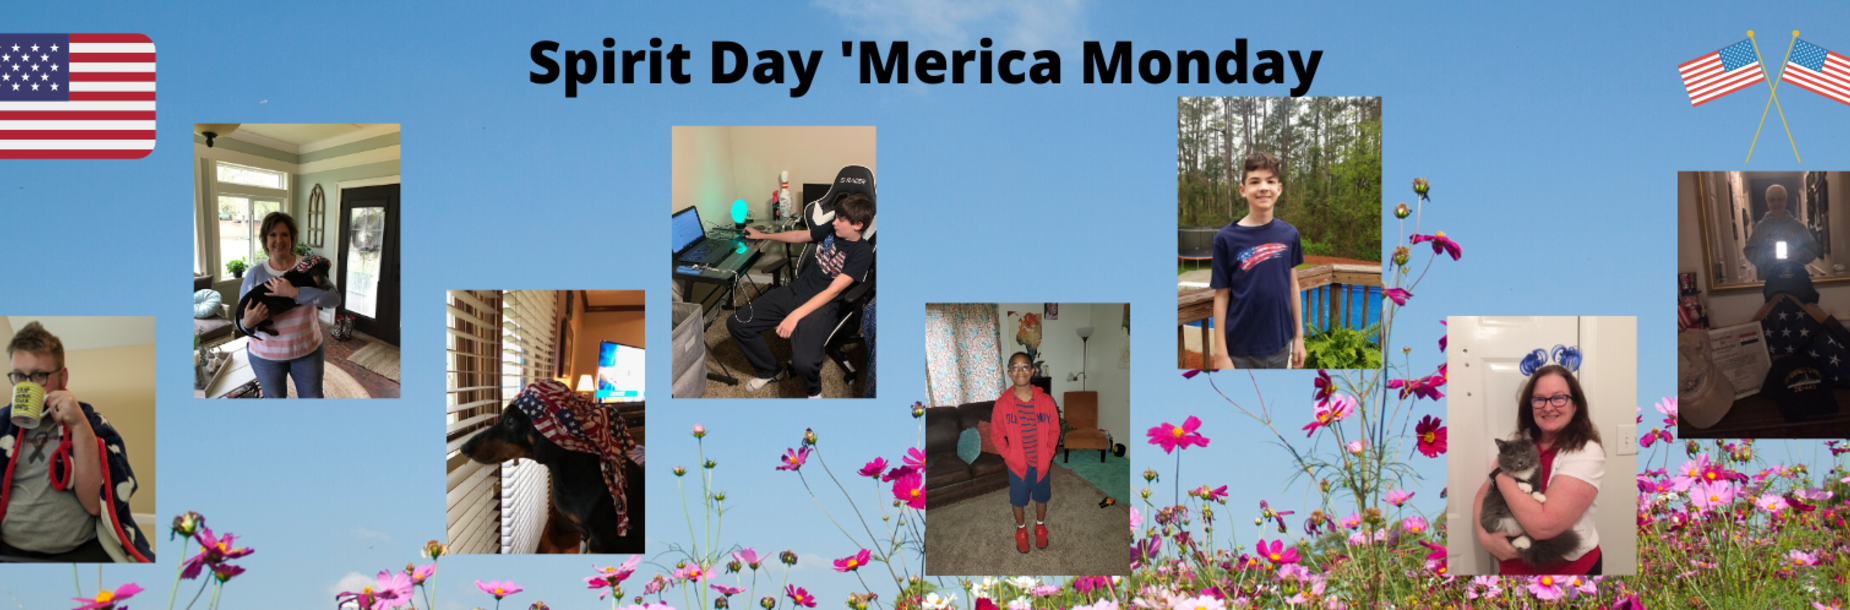 Students and teachers dressed in spirit day colors of red, white and blue